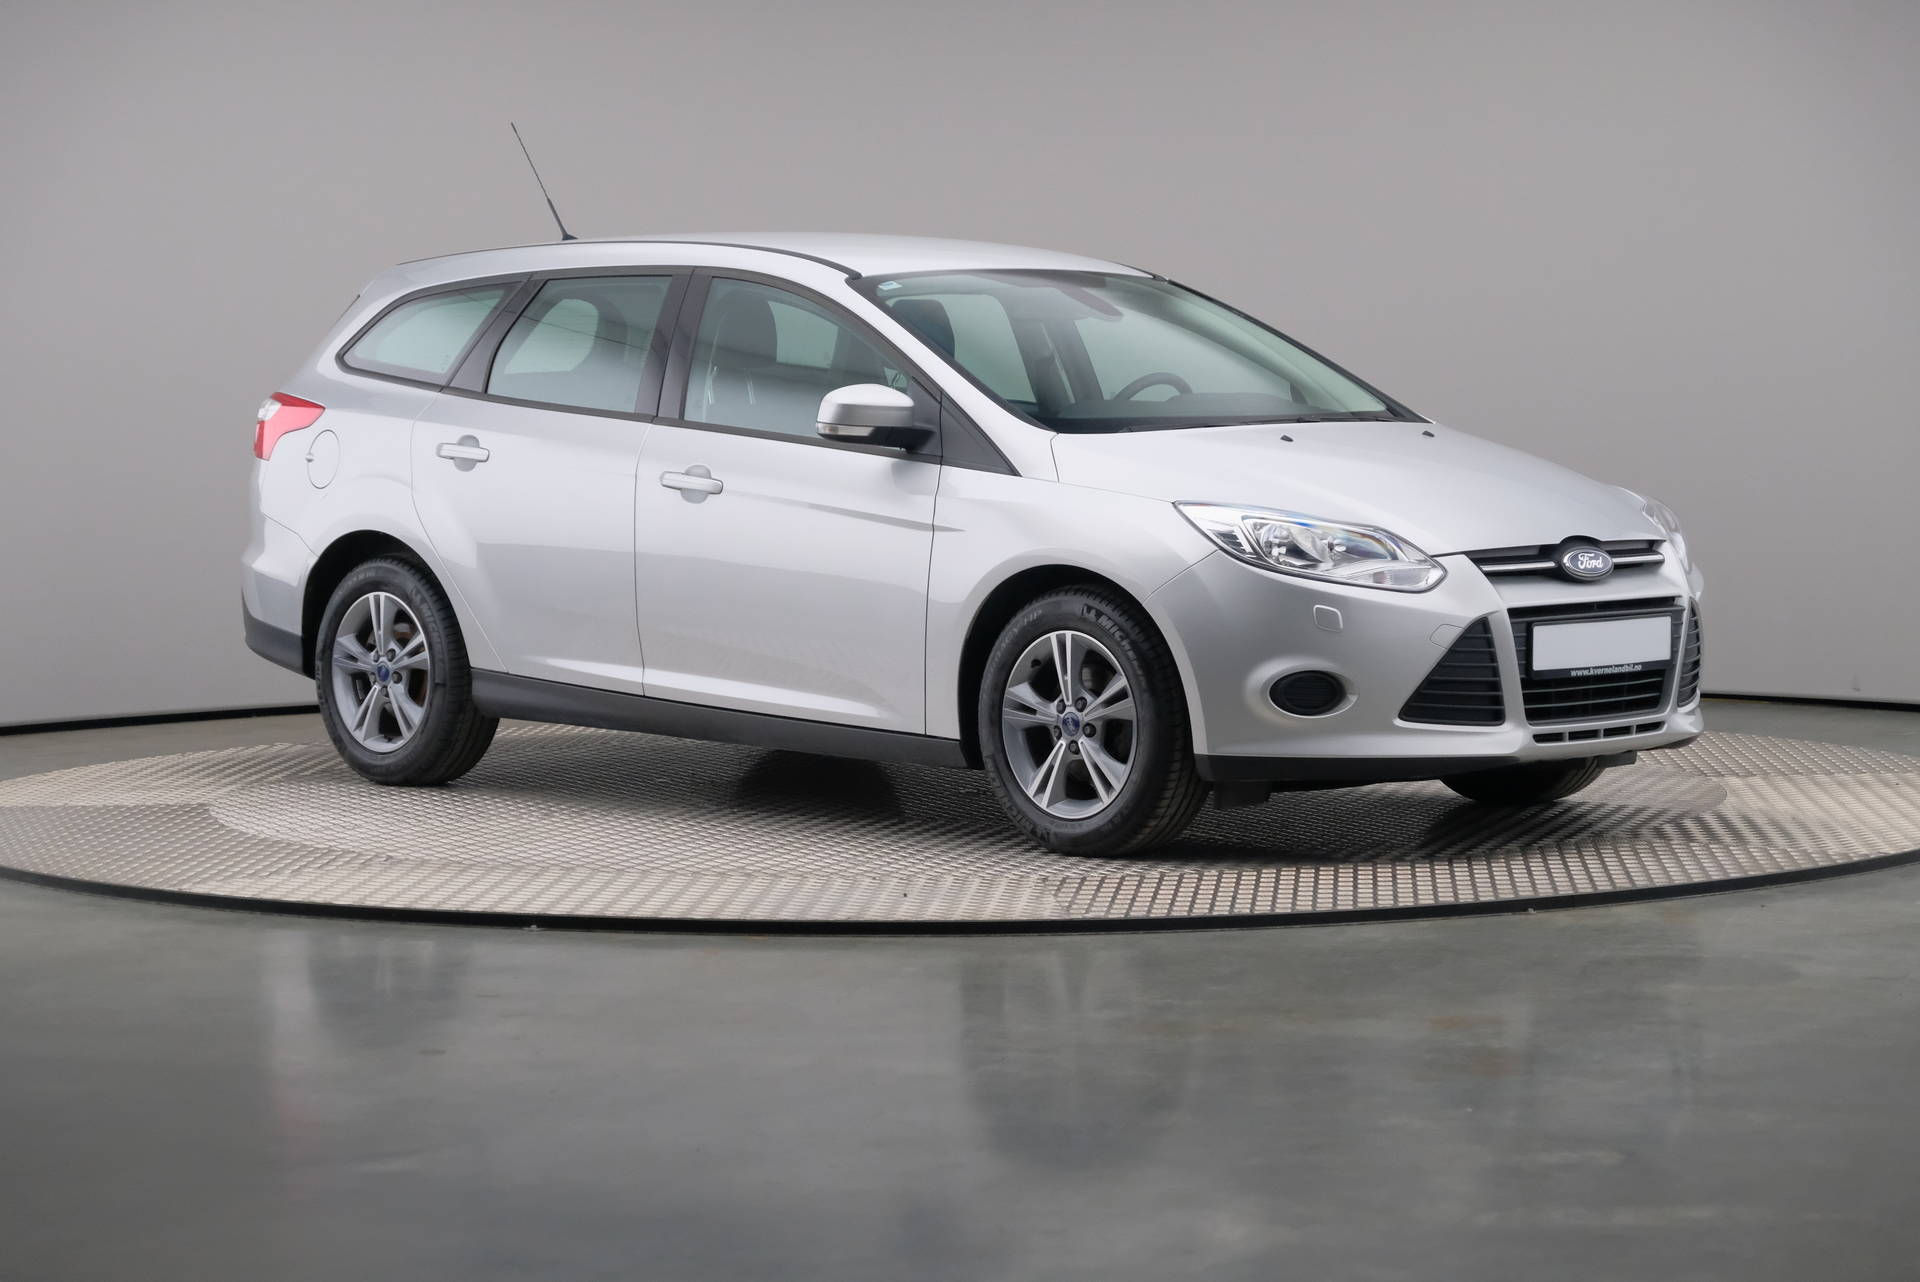 Ford Focus 1.1 100HK Trend PDC/BT, 360-image27